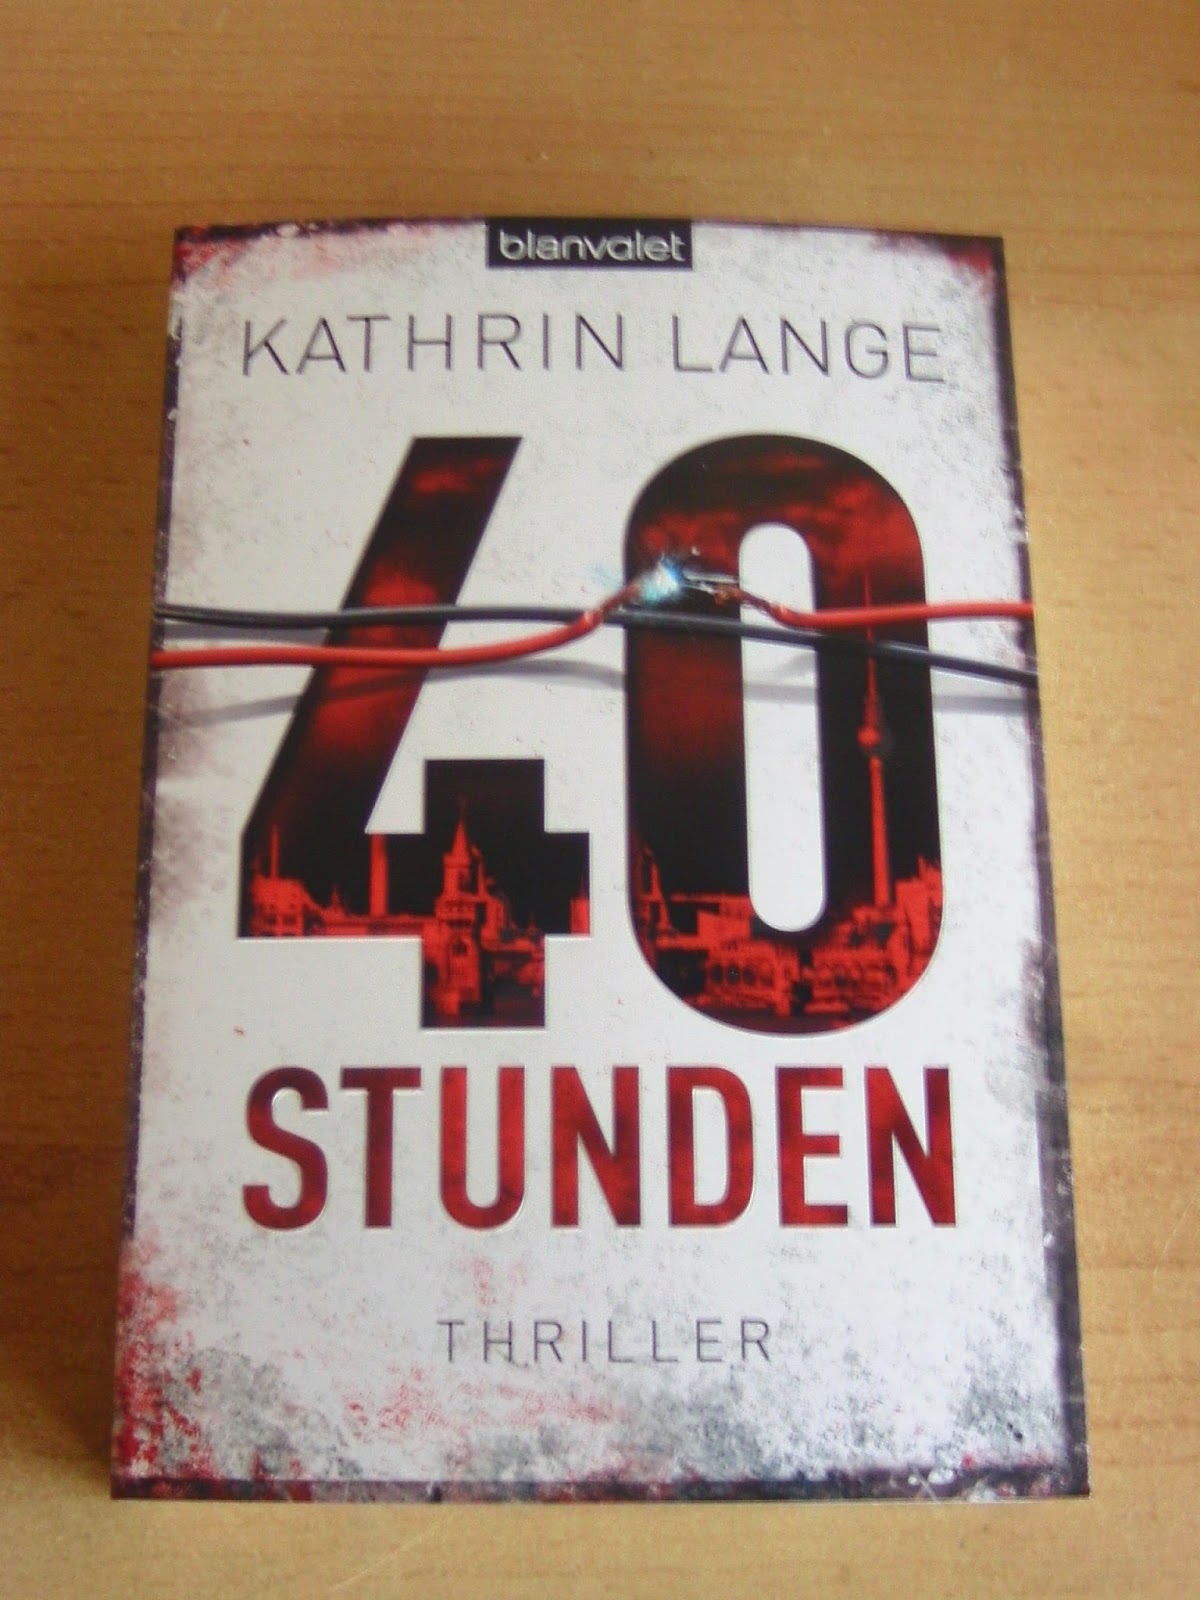 http://www.amazon.de/40-Stunden-Thriller-Kathrin-Lange-ebook/dp/B00GMH6X3S/ref=sr_1_1?s=books&ie=UTF8&qid=1412010583&sr=1-1&keywords=40+stunden